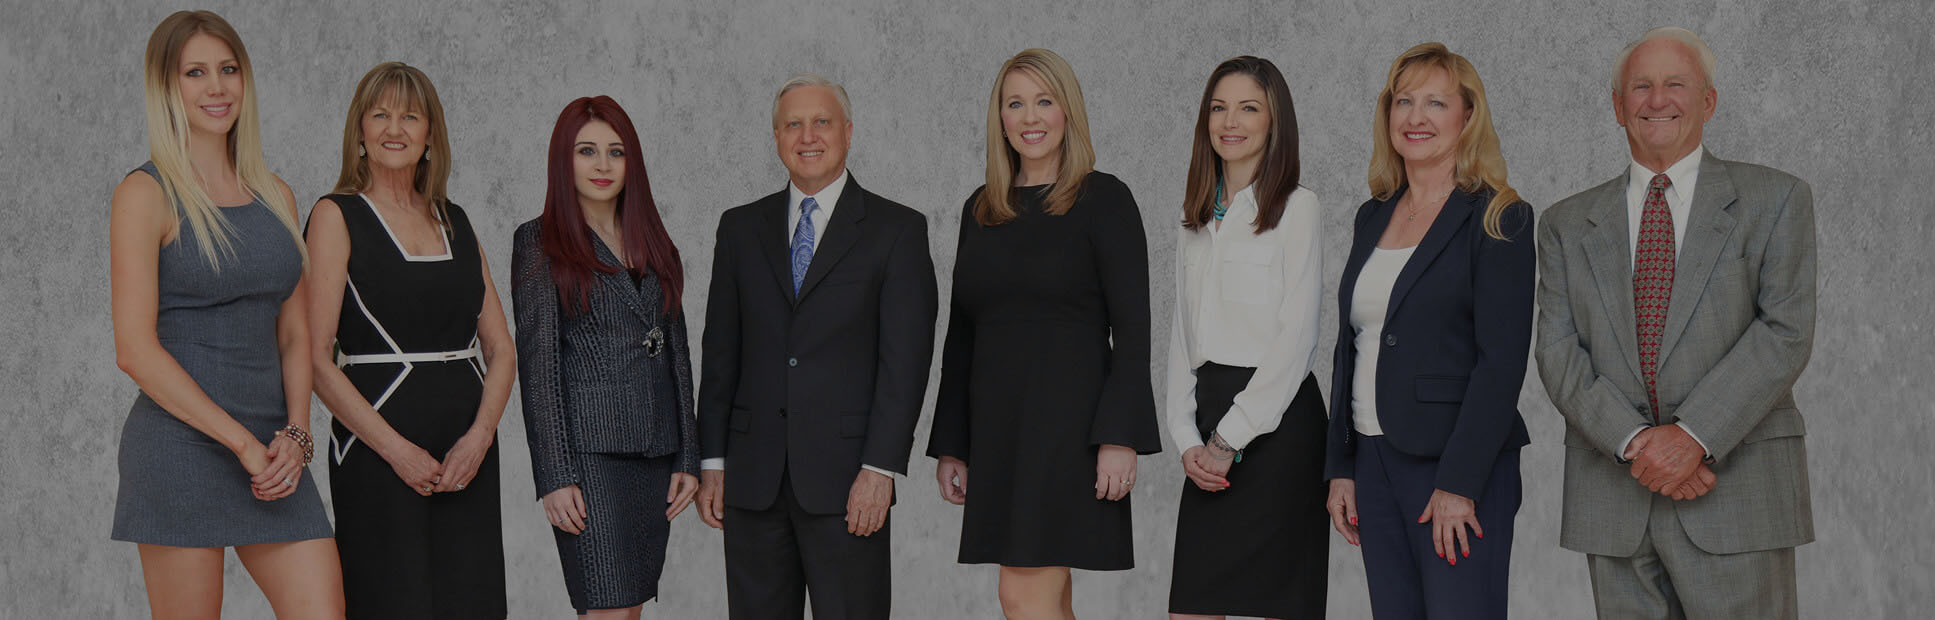 Standish Law Group Family Law Attorneys